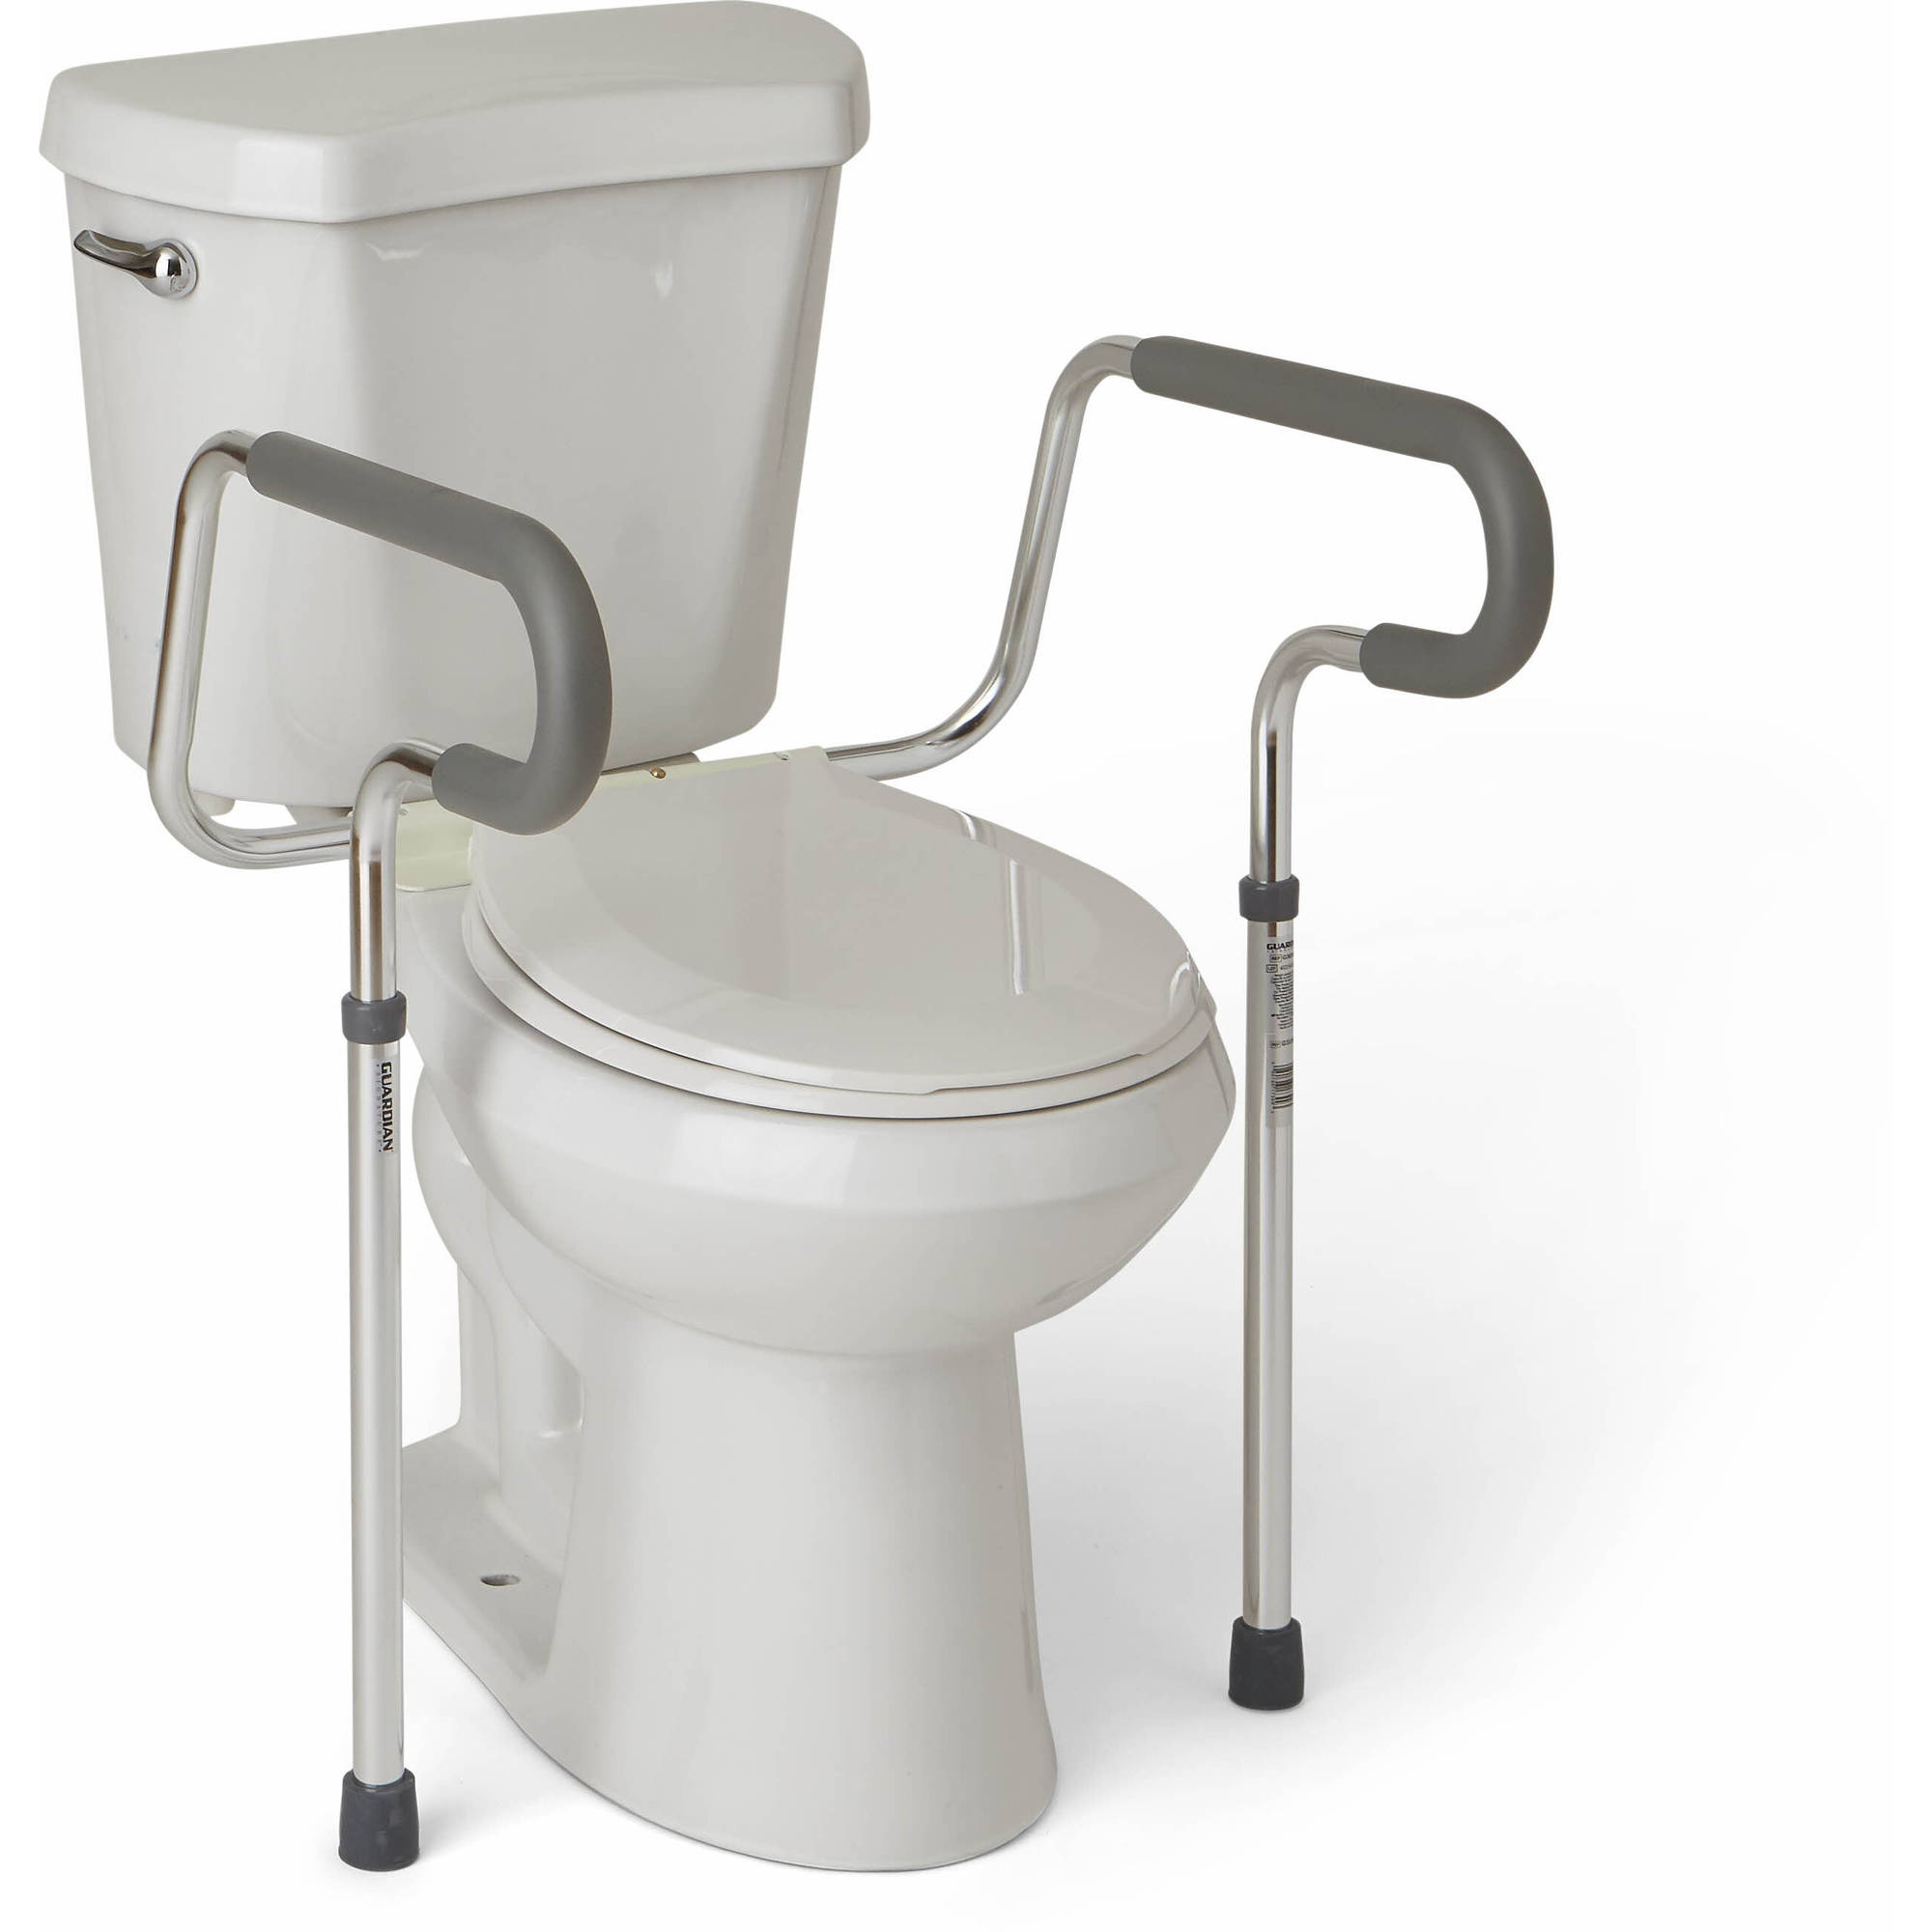 Toilet Handles For Elderly